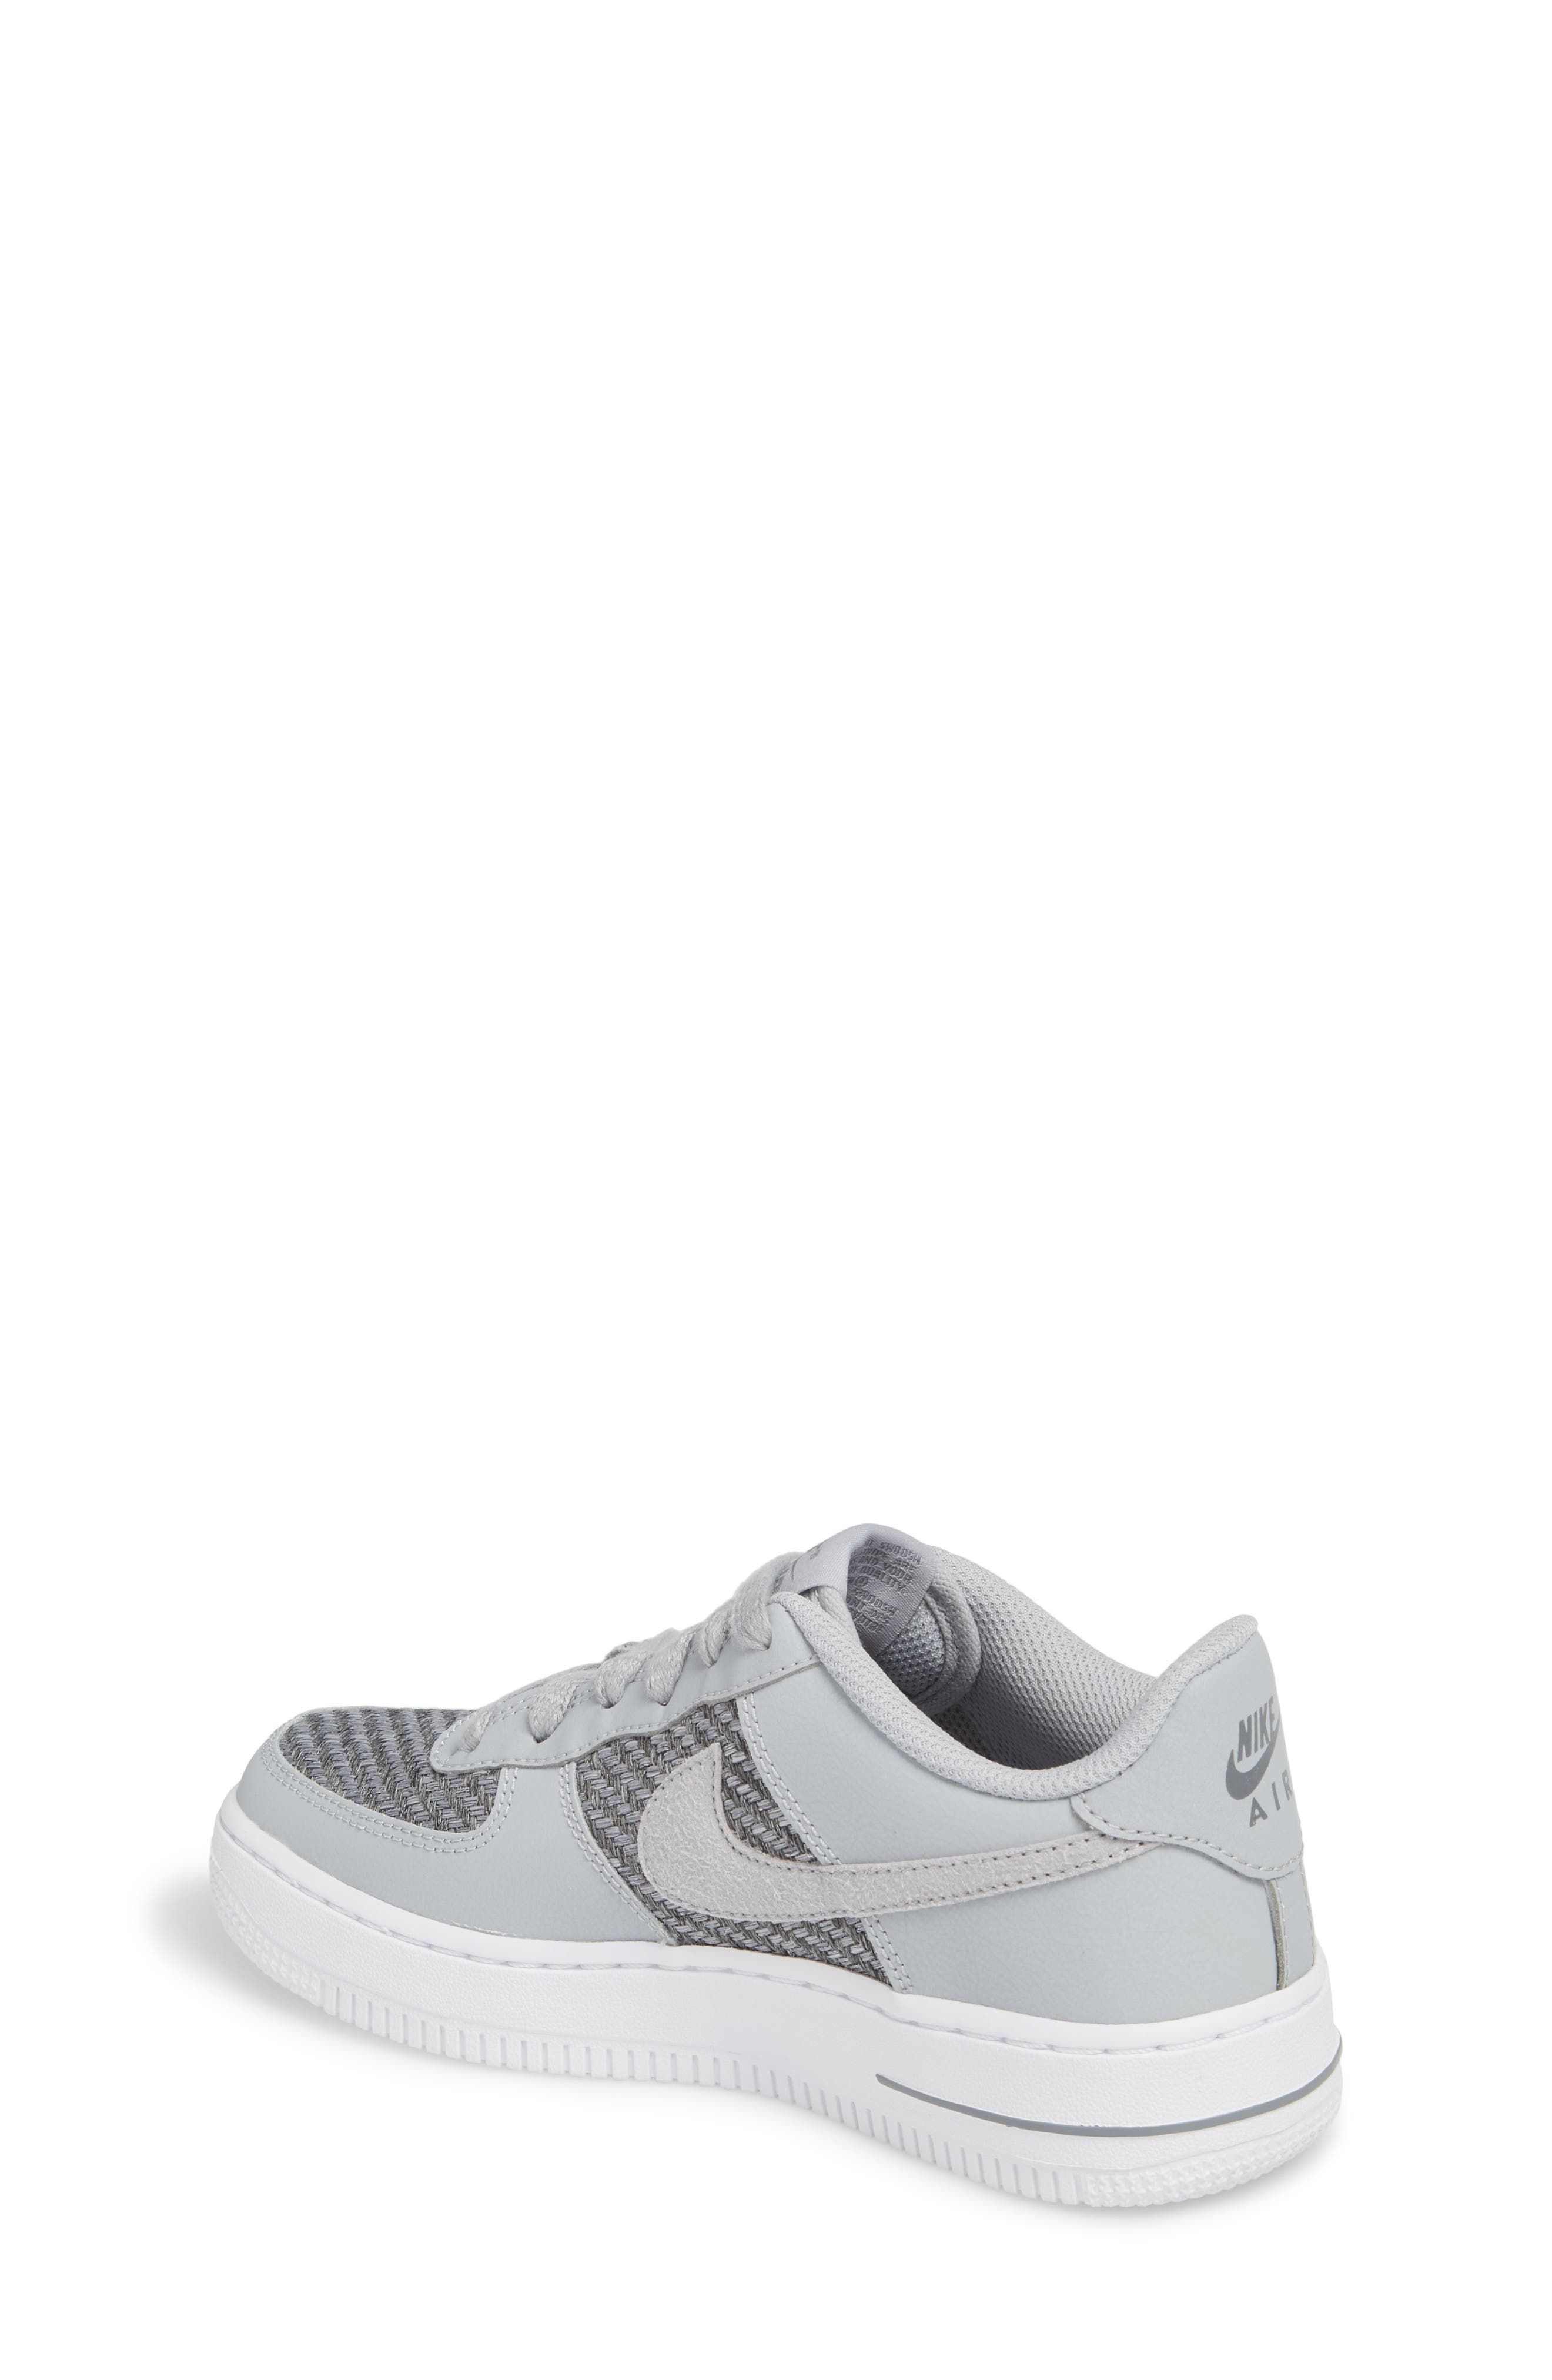 Air Force 1 LV8 Sneaker,                             Alternate thumbnail 2, color,                             Cool Grey/ White